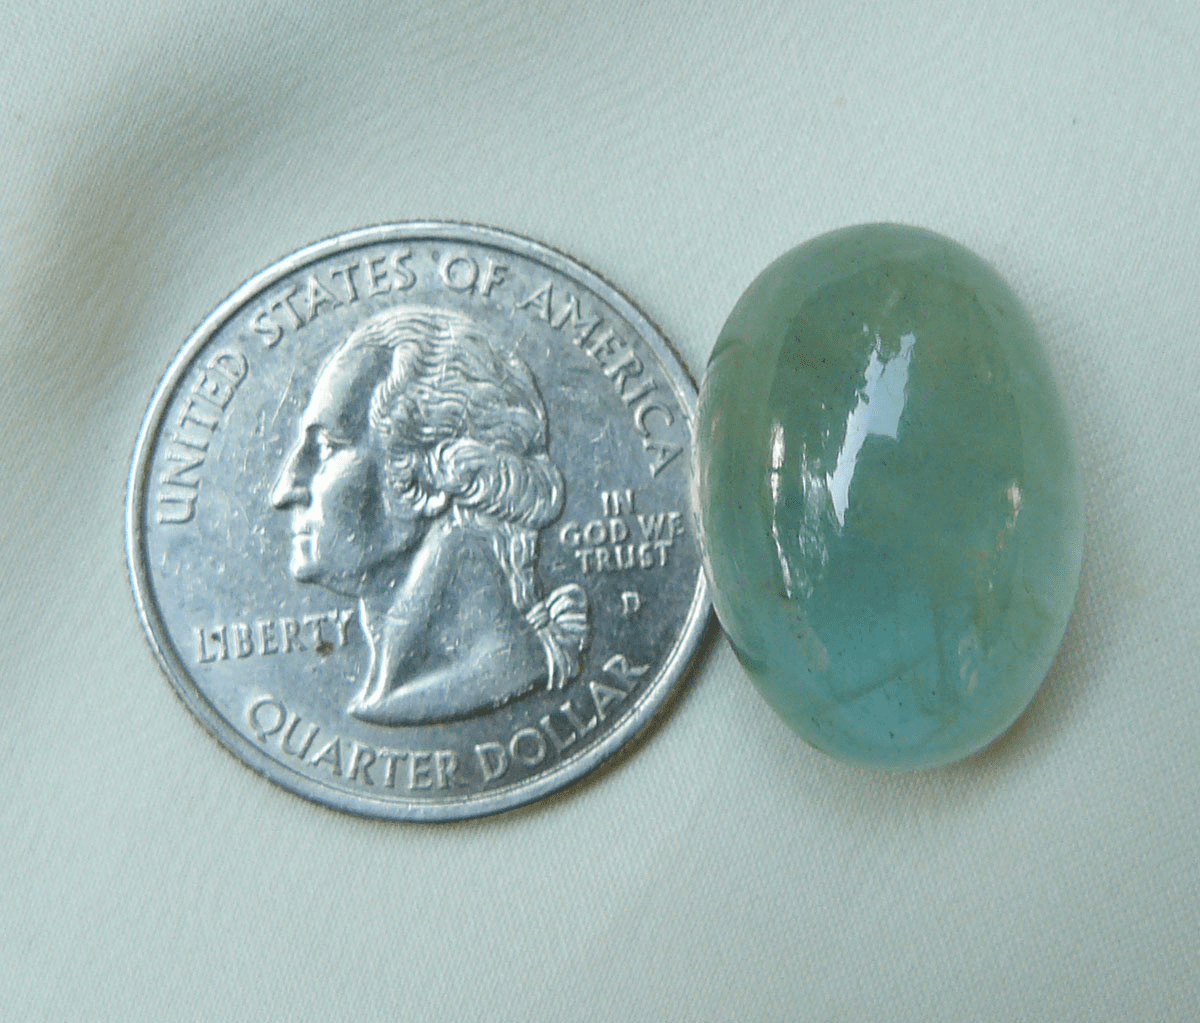 Aqua Marine Cabochons with Ebay Low prices